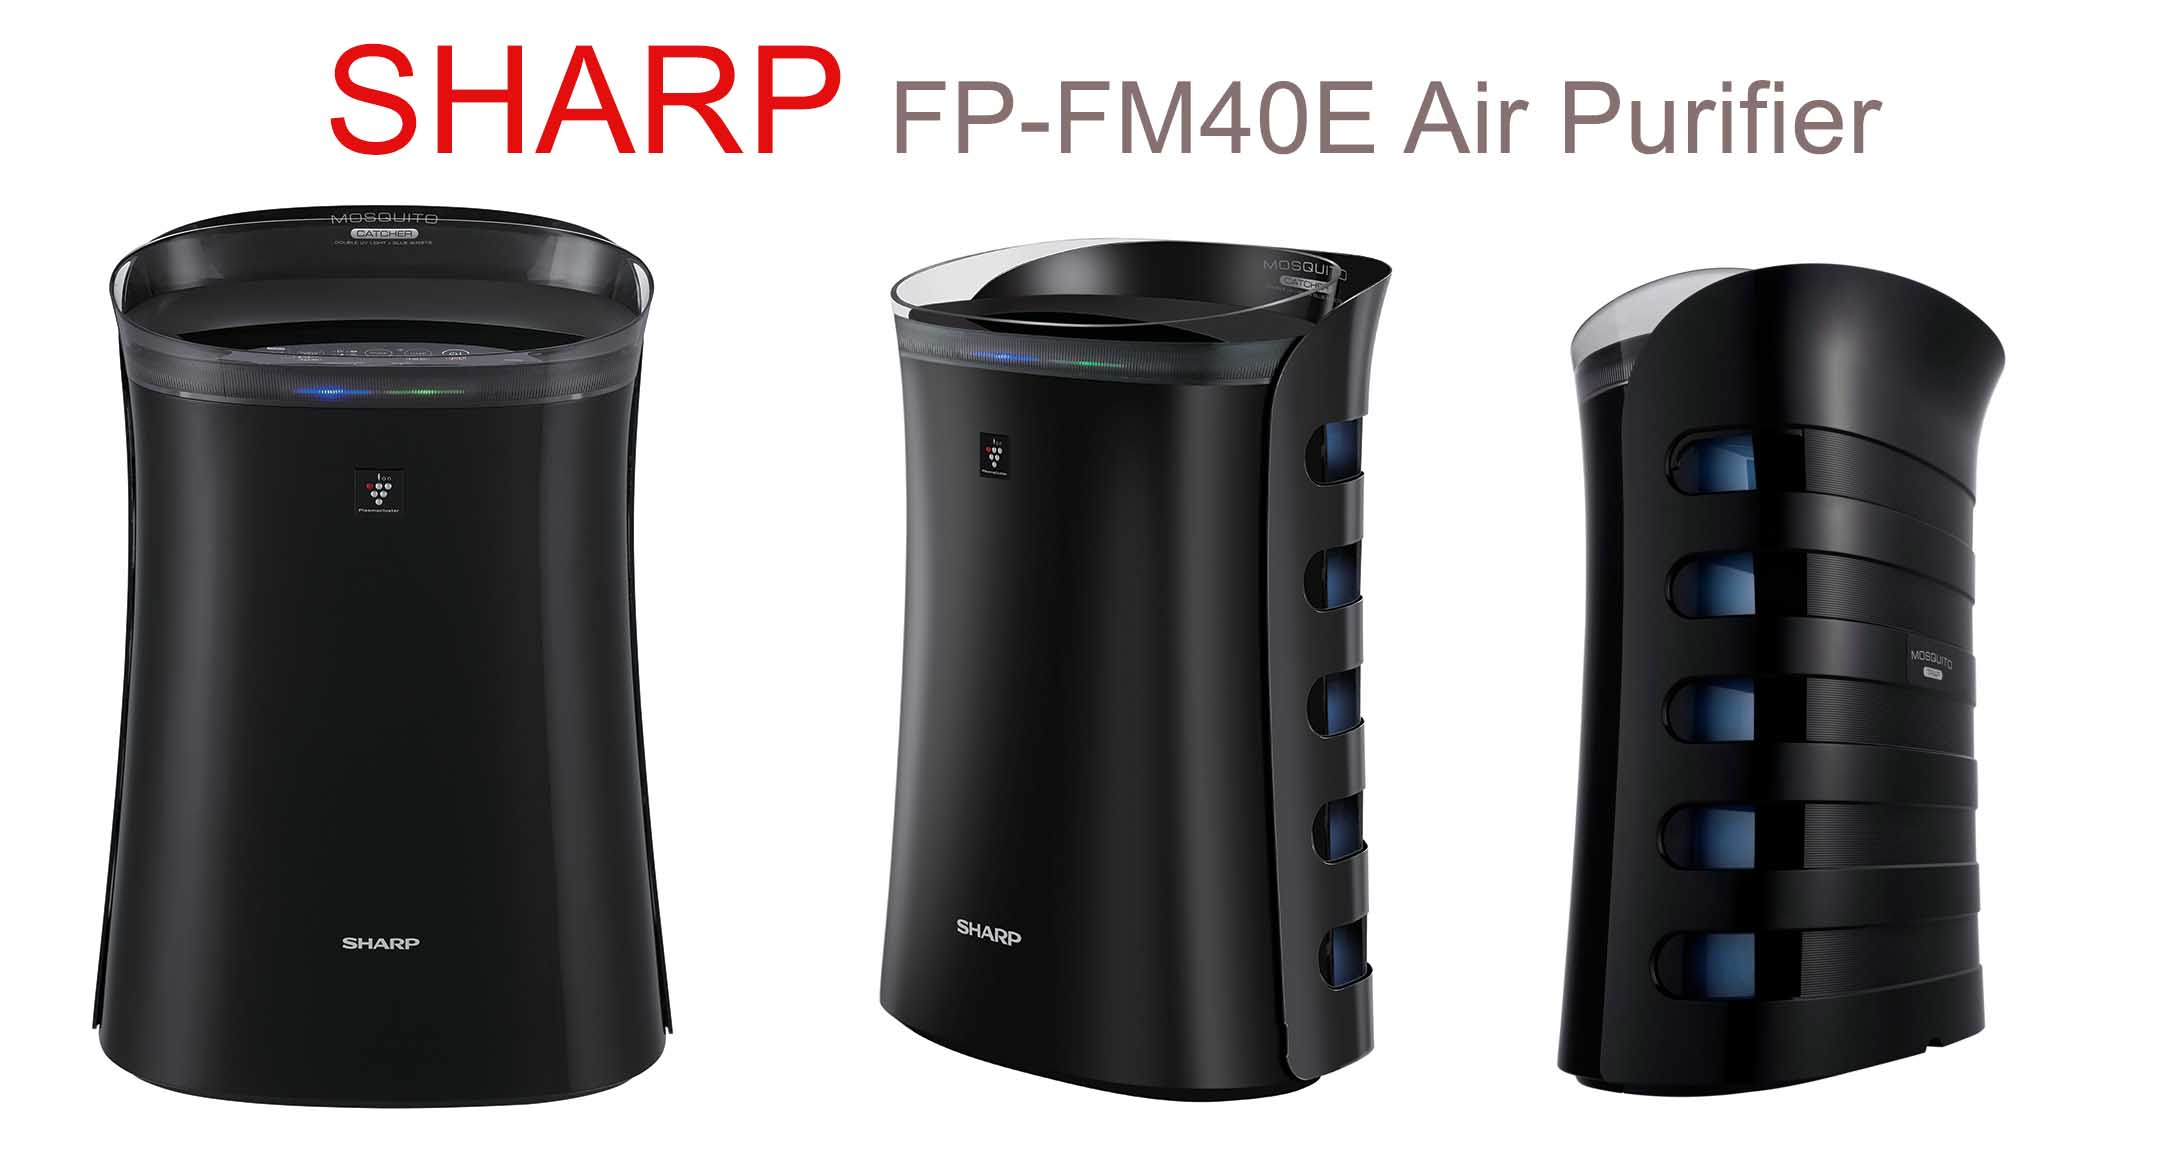 Sharp launched World's first Air Purifier with mosquito catcher